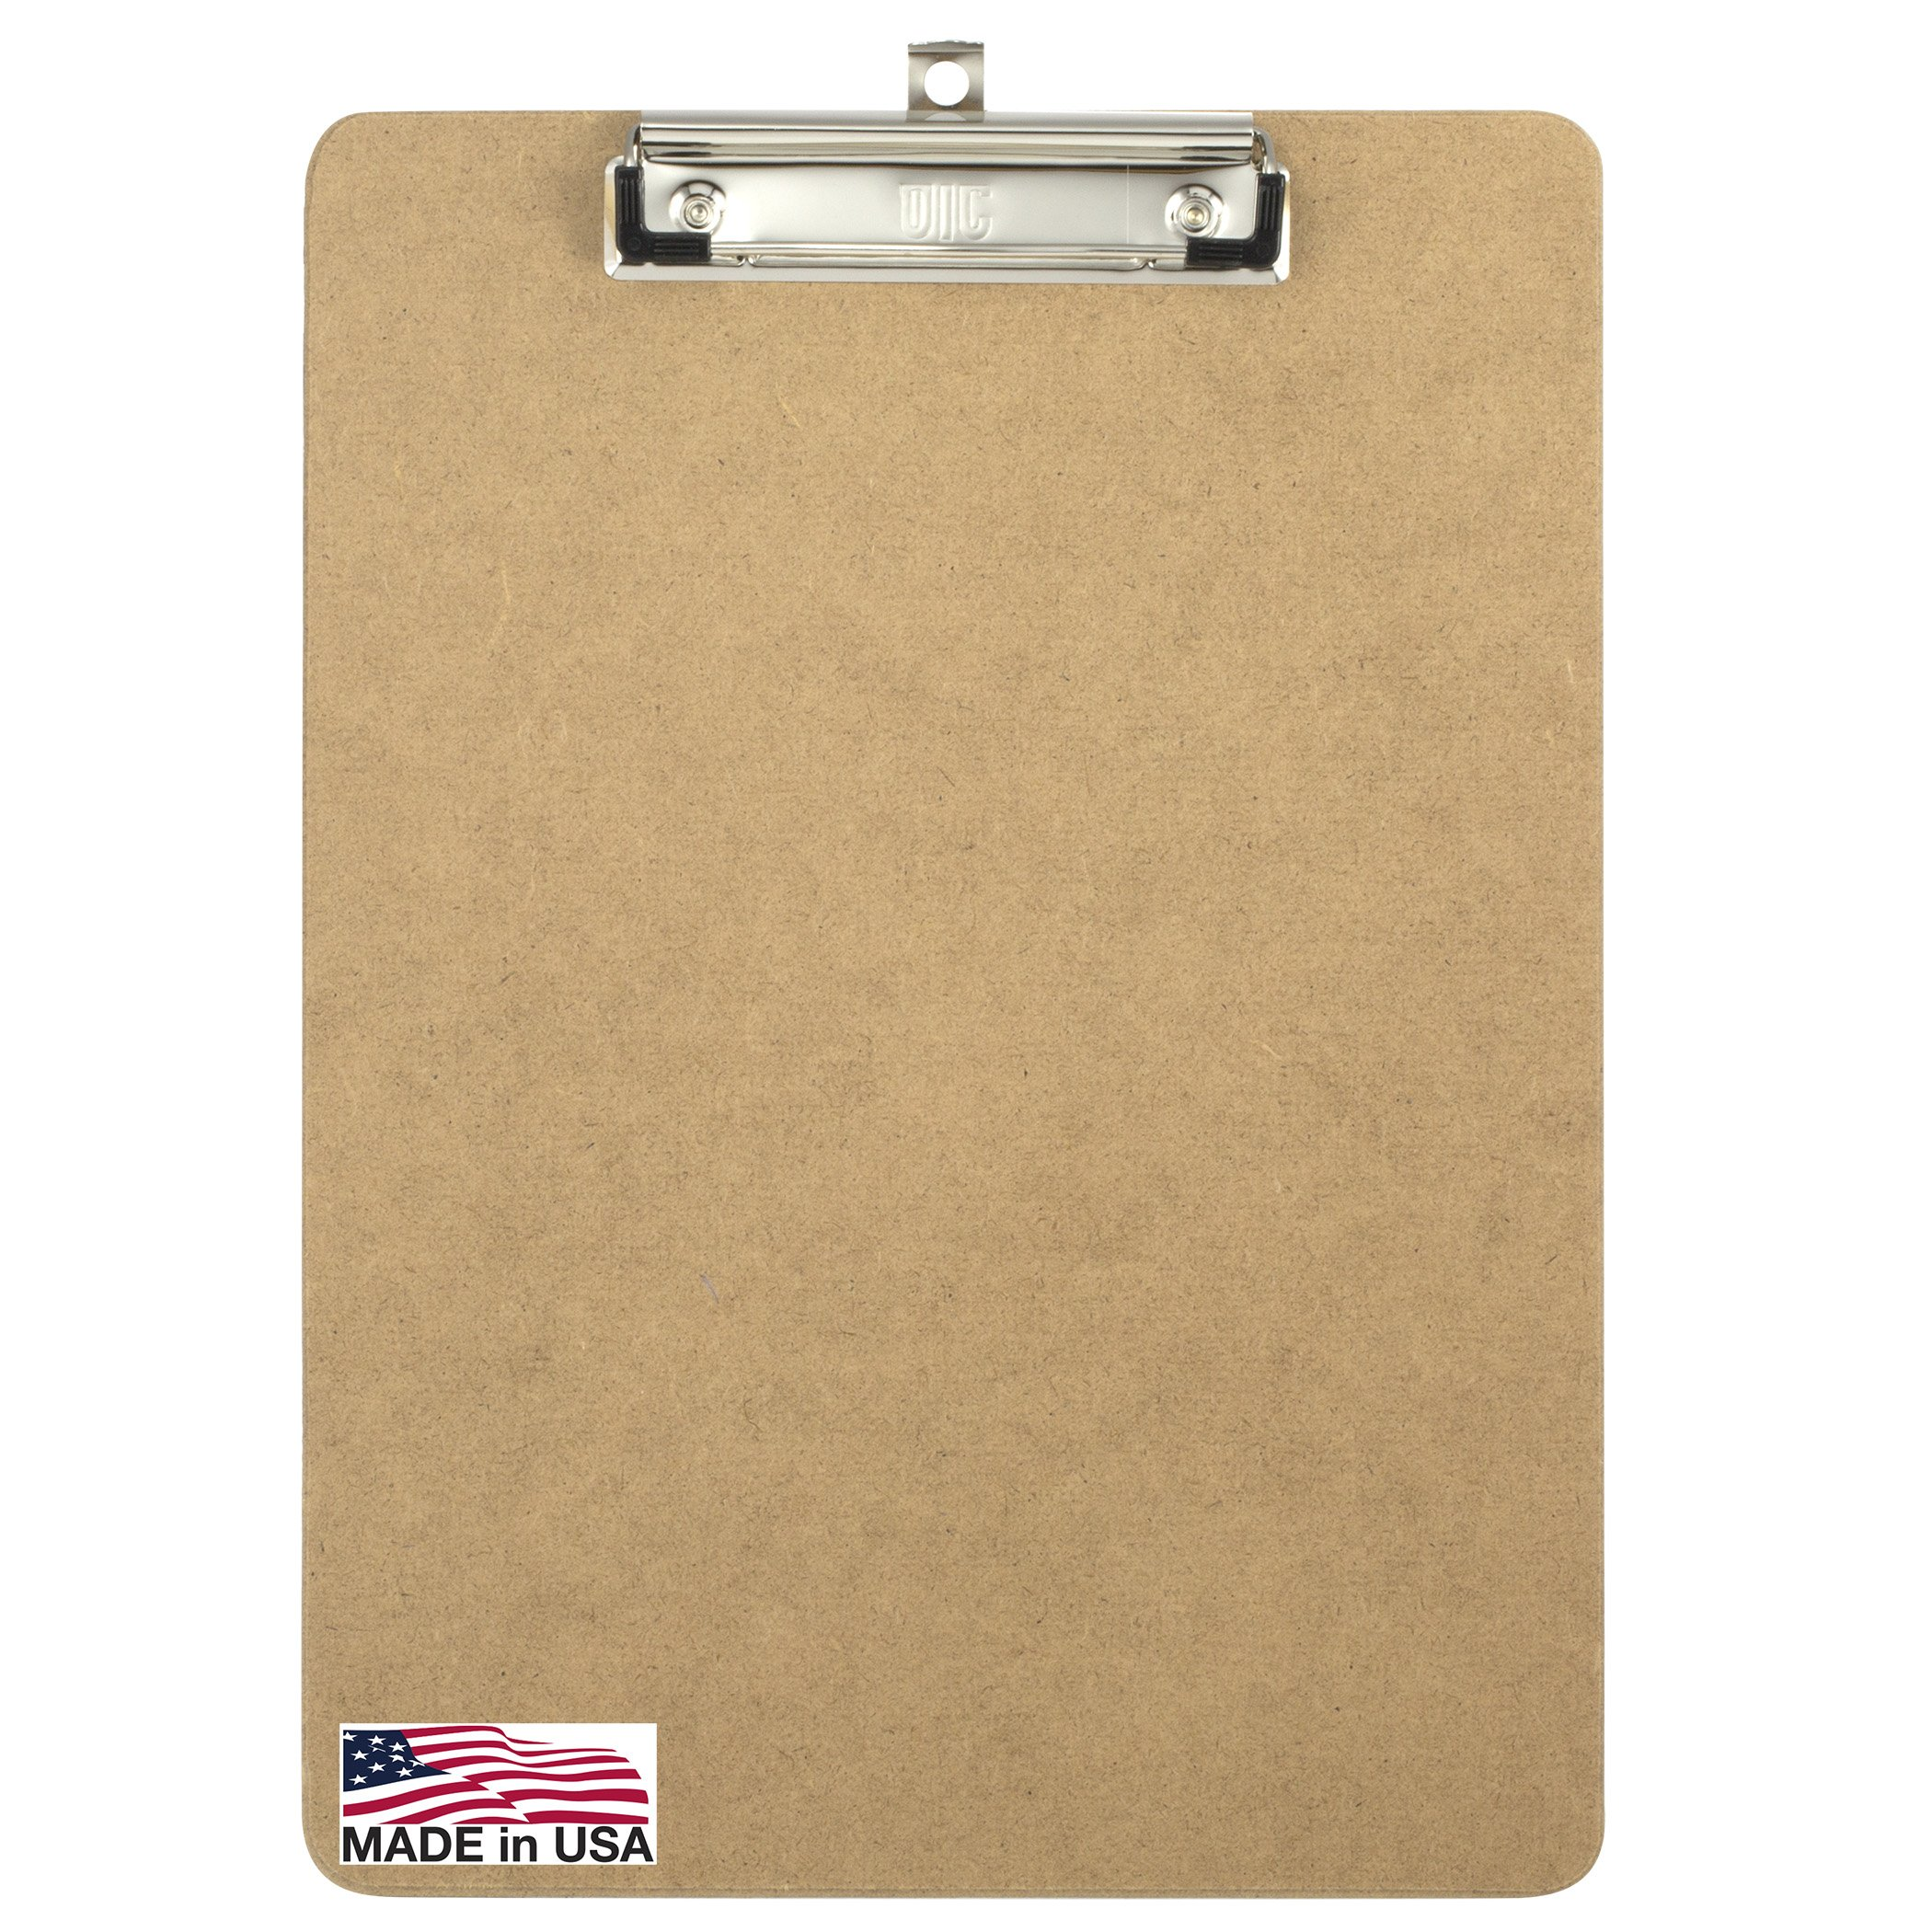 Officemate Letter Size Wood Clipboards, Low Profile Clip, 24 Pack Clipboard, Brown (83824) by Officemate (Image #2)